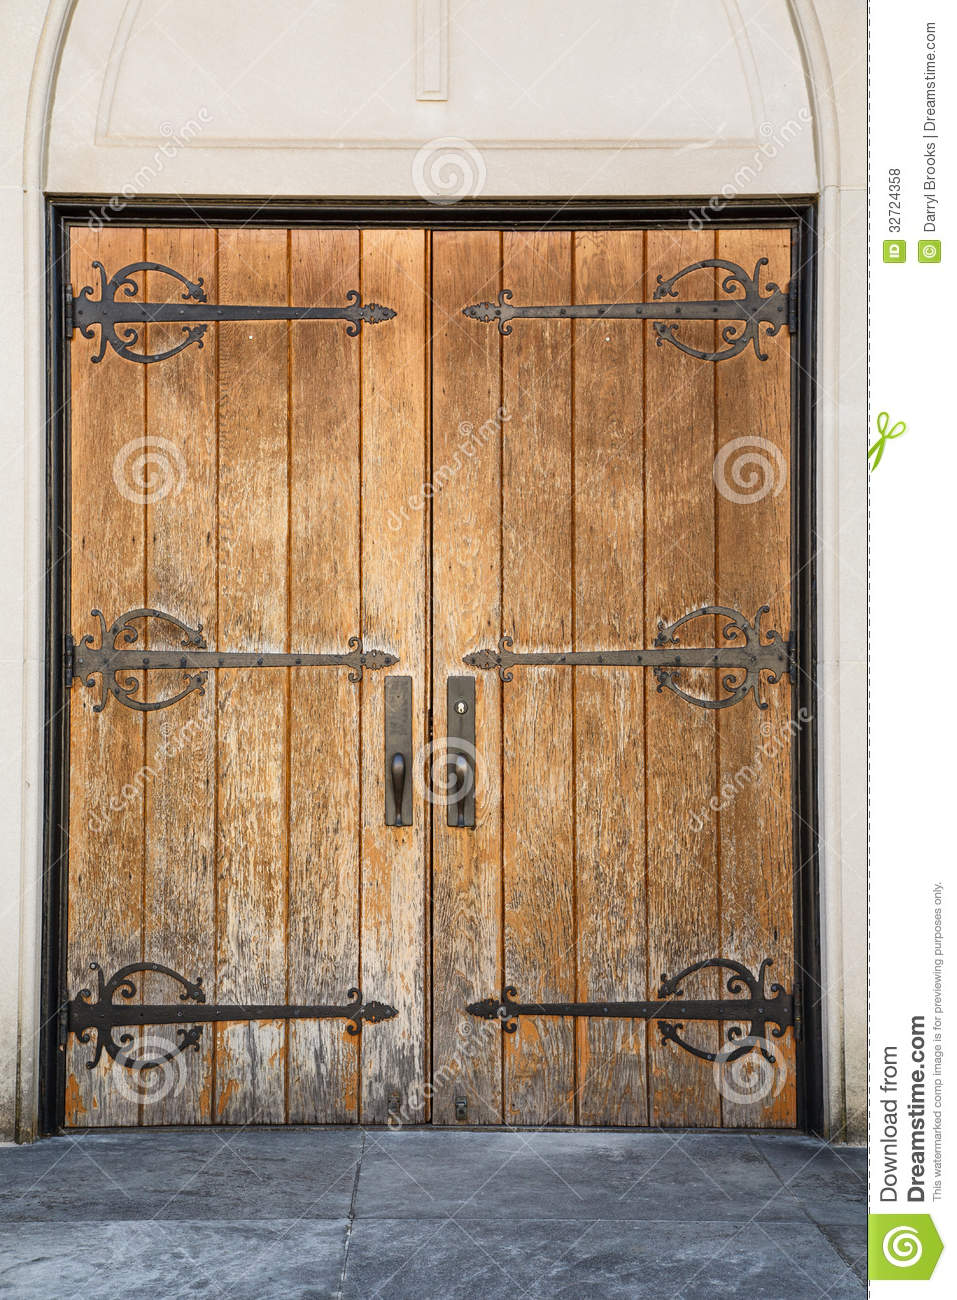 Old Church Doors With Iron Hinges Stock Photo Image Of Wood Entry 32724358